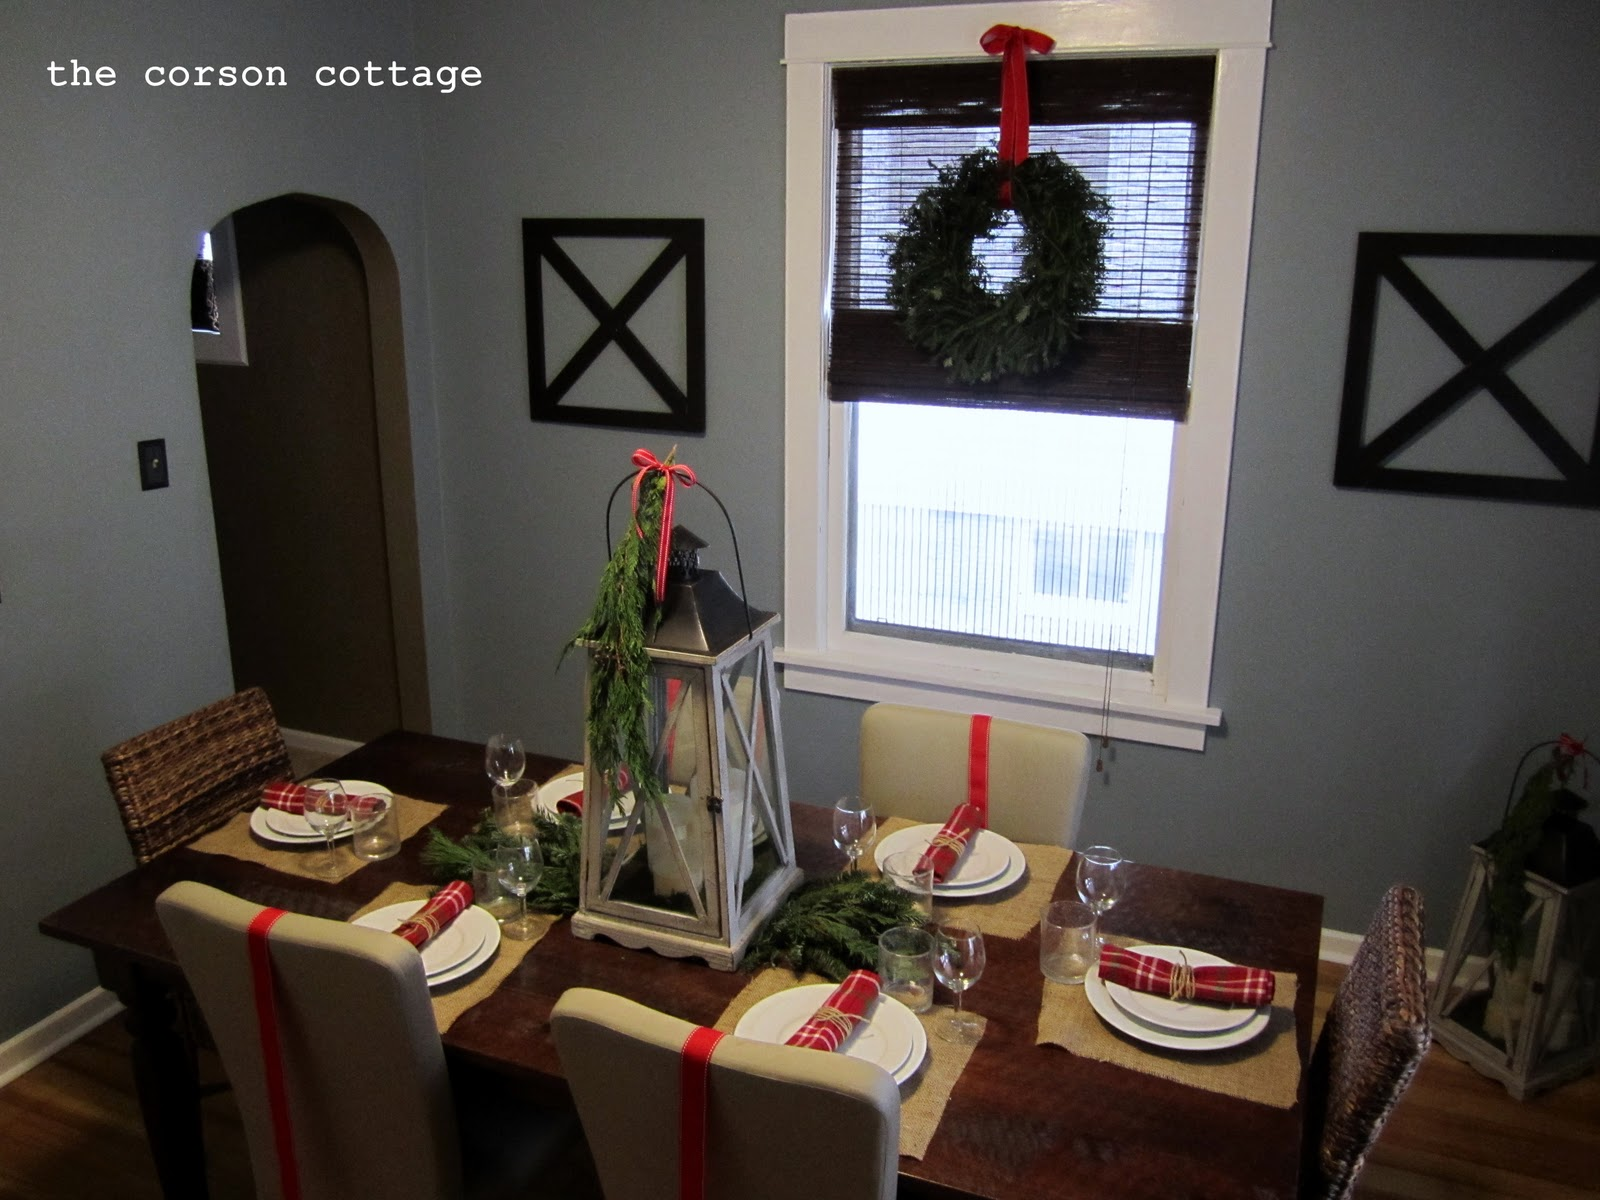 the corson cottage Holiday Dining Table Decor Part 2 : HolidayDining1 from thecorsoncottage.blogspot.com size 1600 x 1200 jpeg 250kB